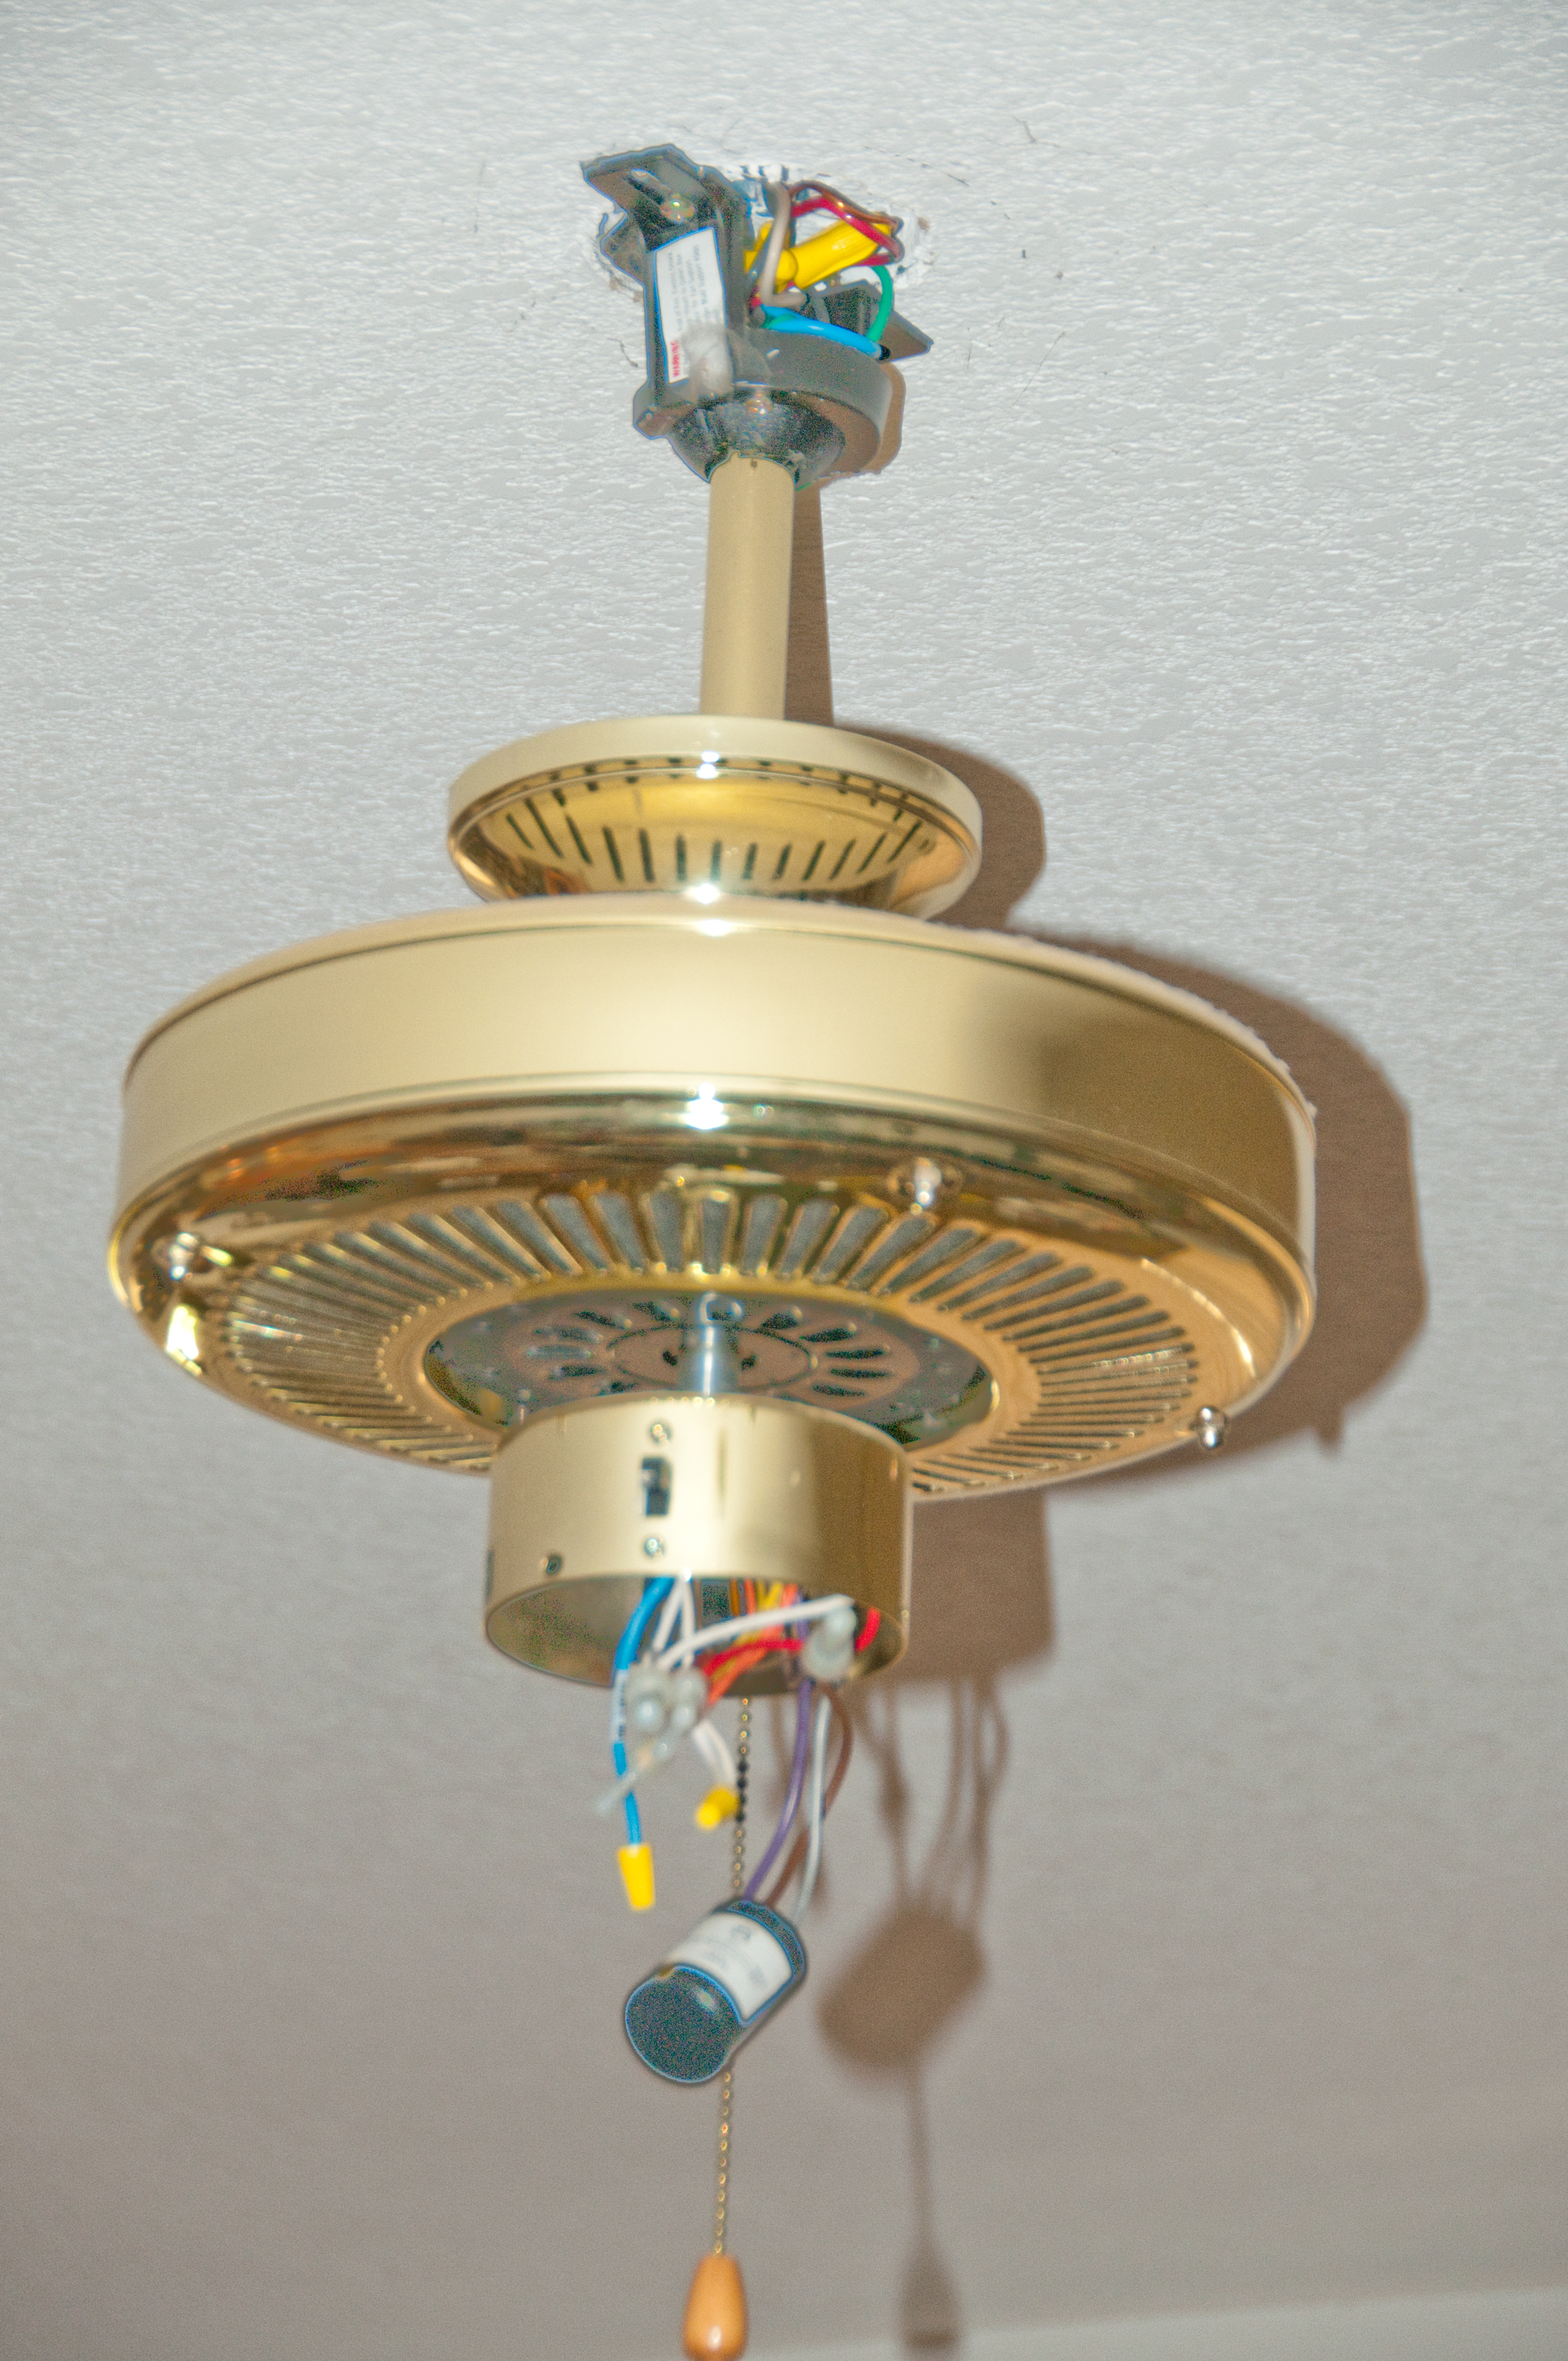 Engine Ceiling Fan : Ceiling fan wiring red black white ground free